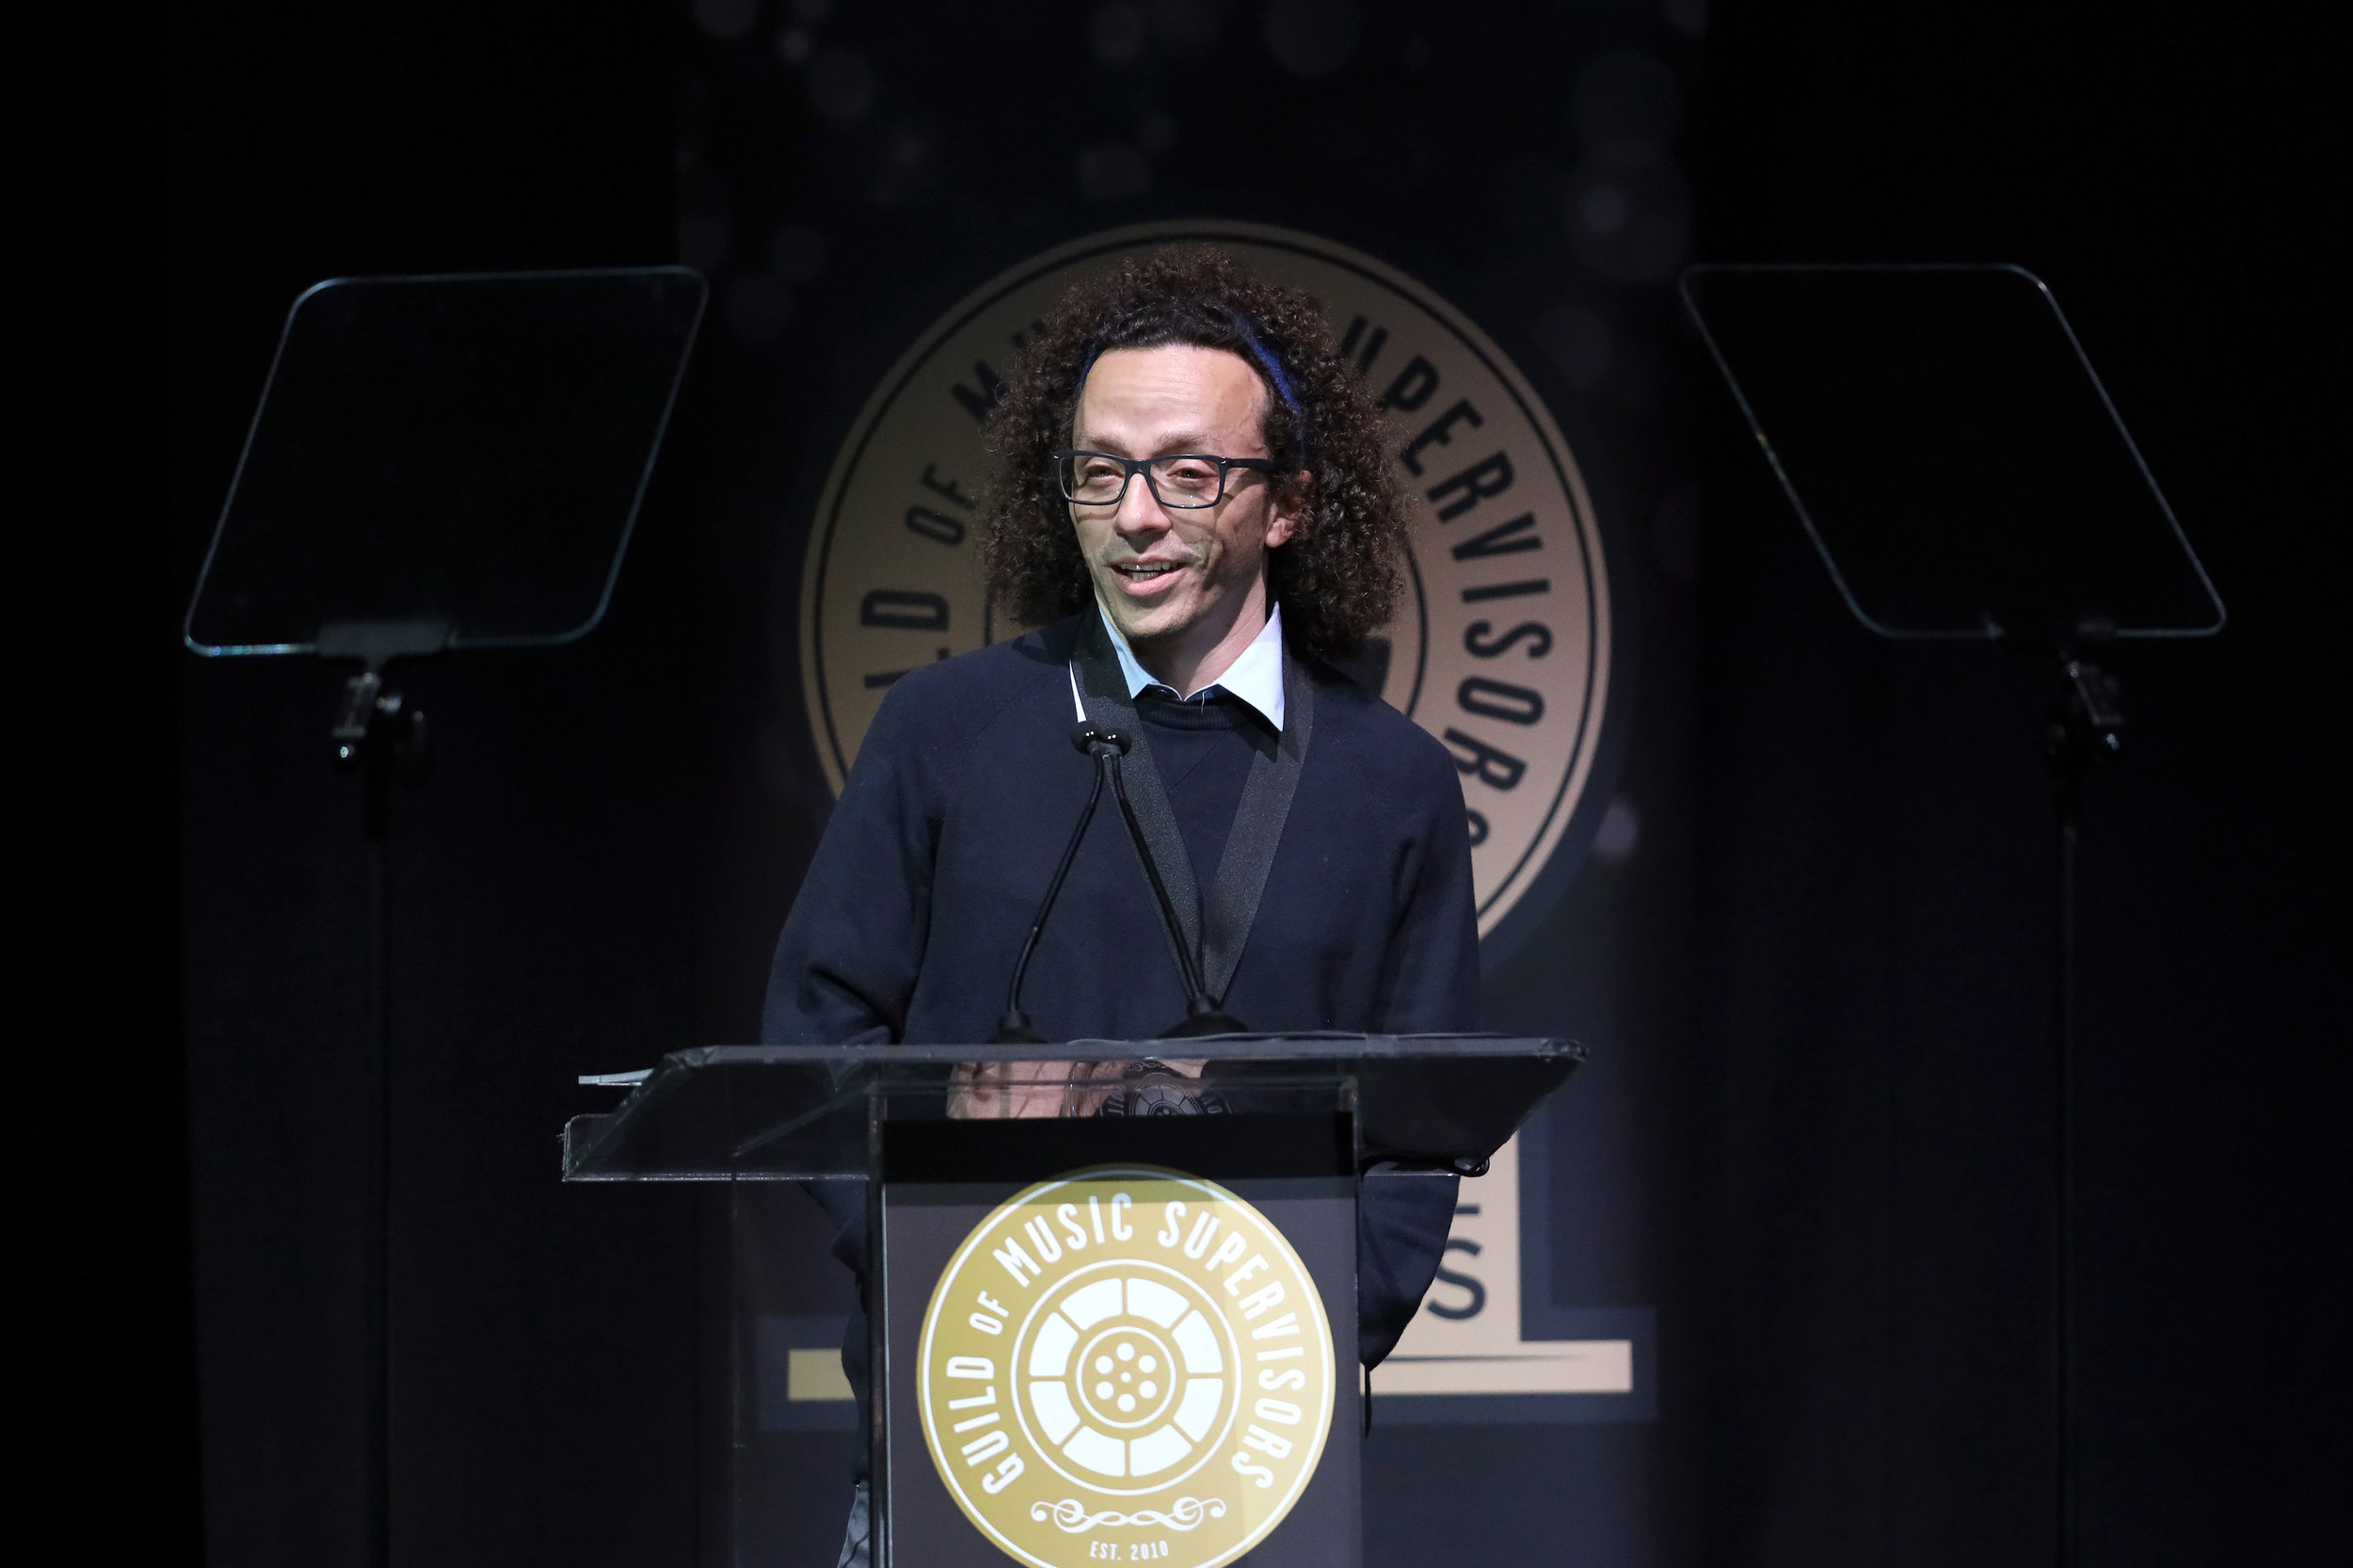 Jordan Silverberg at the 9th Annual Guild of Music Supervisors Awards. | © Rich Polk | Getty Images